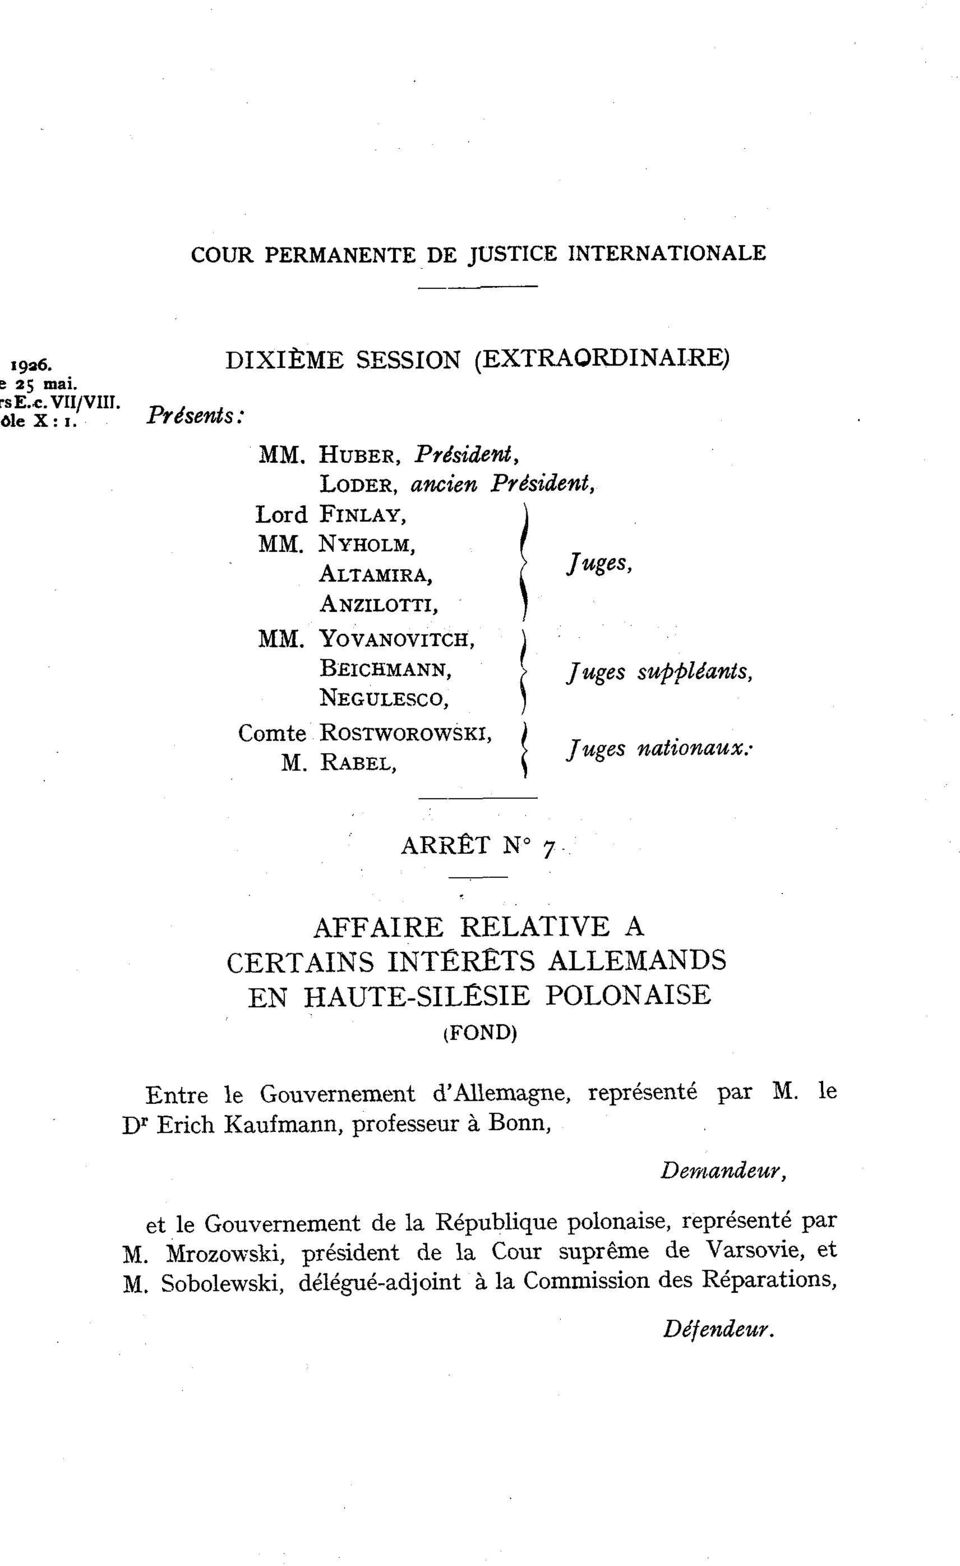 YOVANOVITCH, BEICIIMANN, / Juges su~#lkants, NECULESCO, j Comte ROSTWOROWSKI, Juges nationaux.. M.